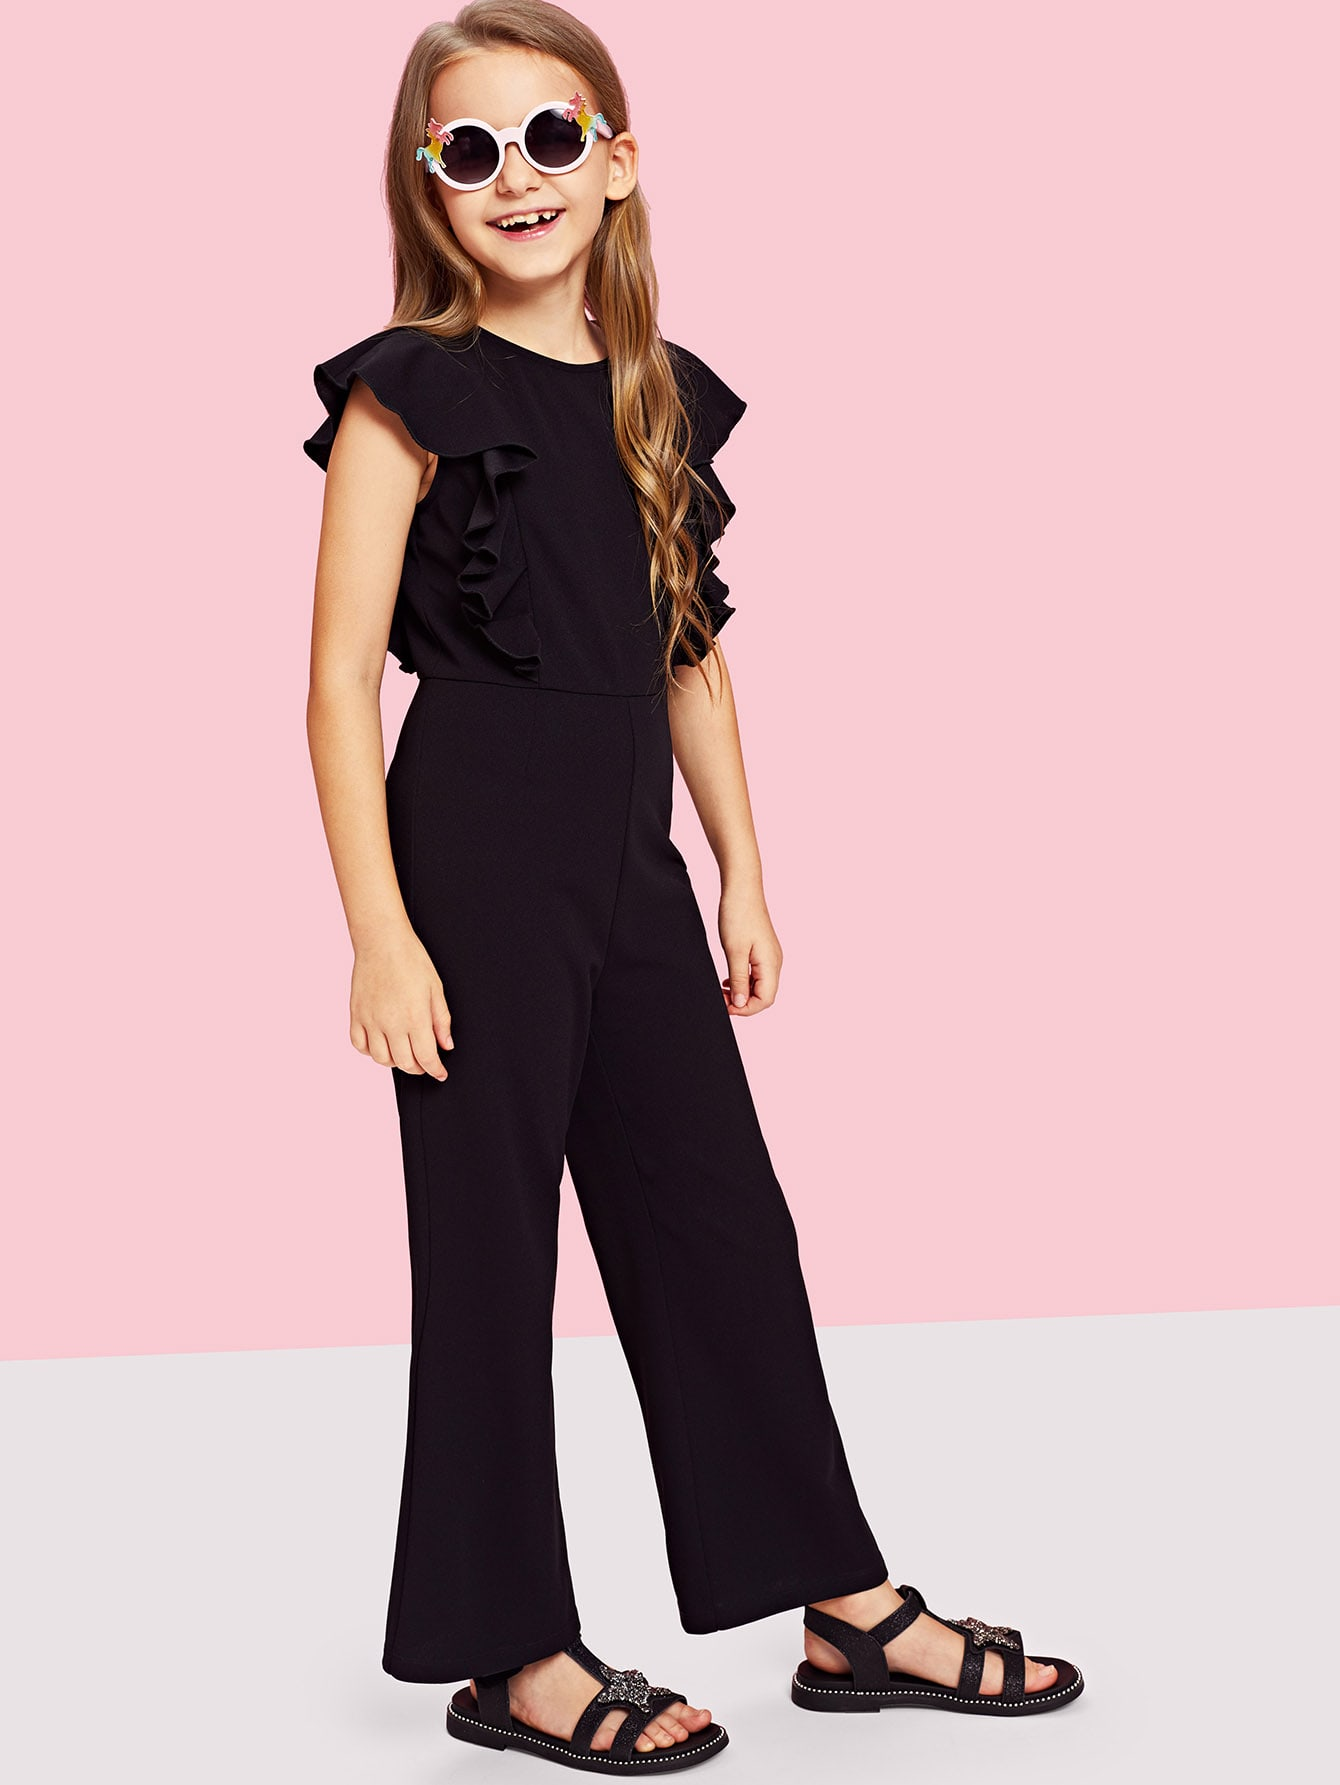 Girls Ruffle Trim Zip Back Round Neck Jumpsuit code гайка alloy 14mm чёрный 2шт